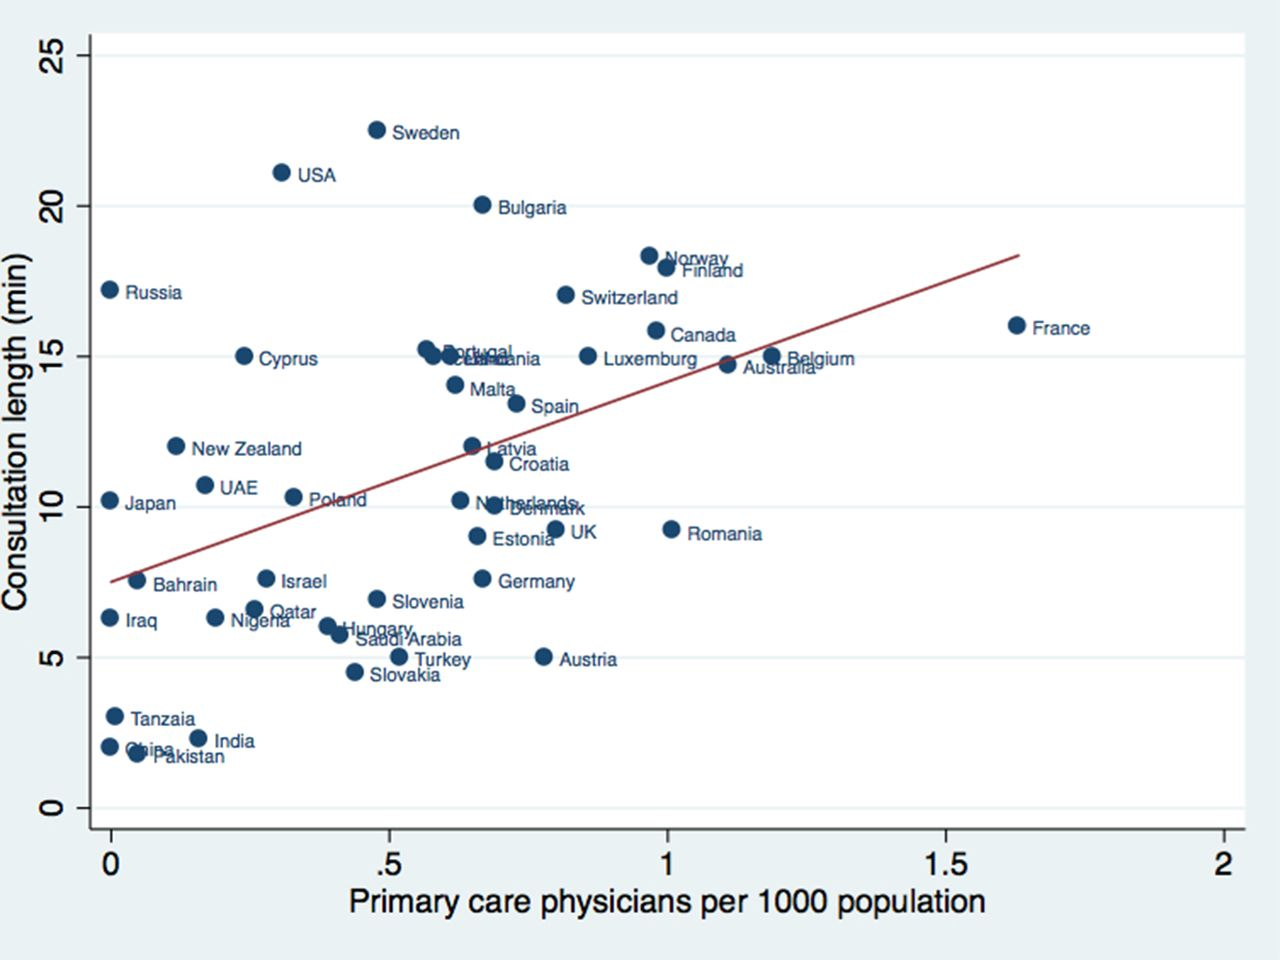 International variations in primary care physician consultation time